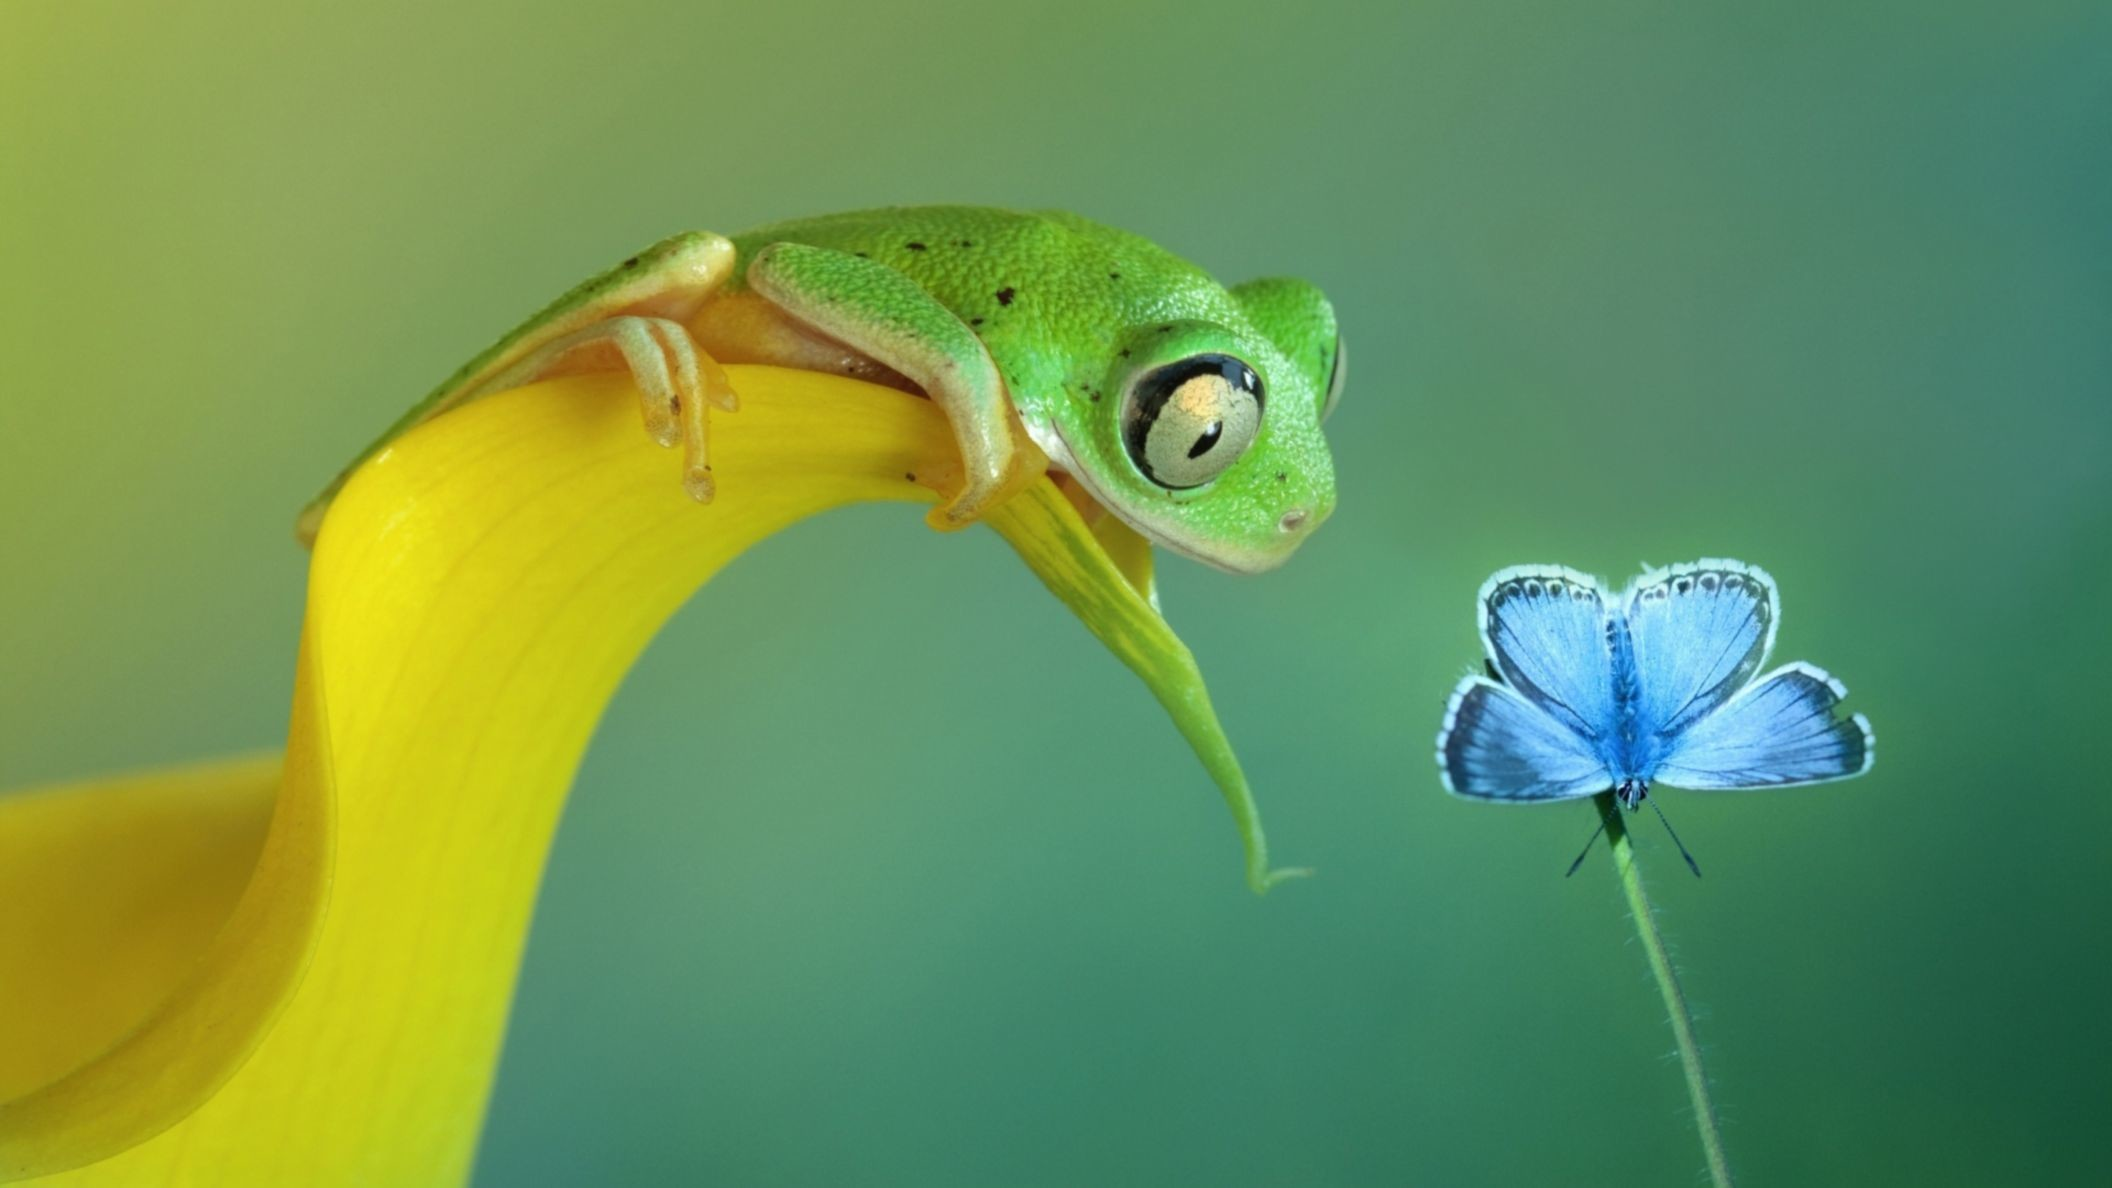 Res: 2112x1188, Funny Frog And Butterfly Macro Full HD Wallpaper